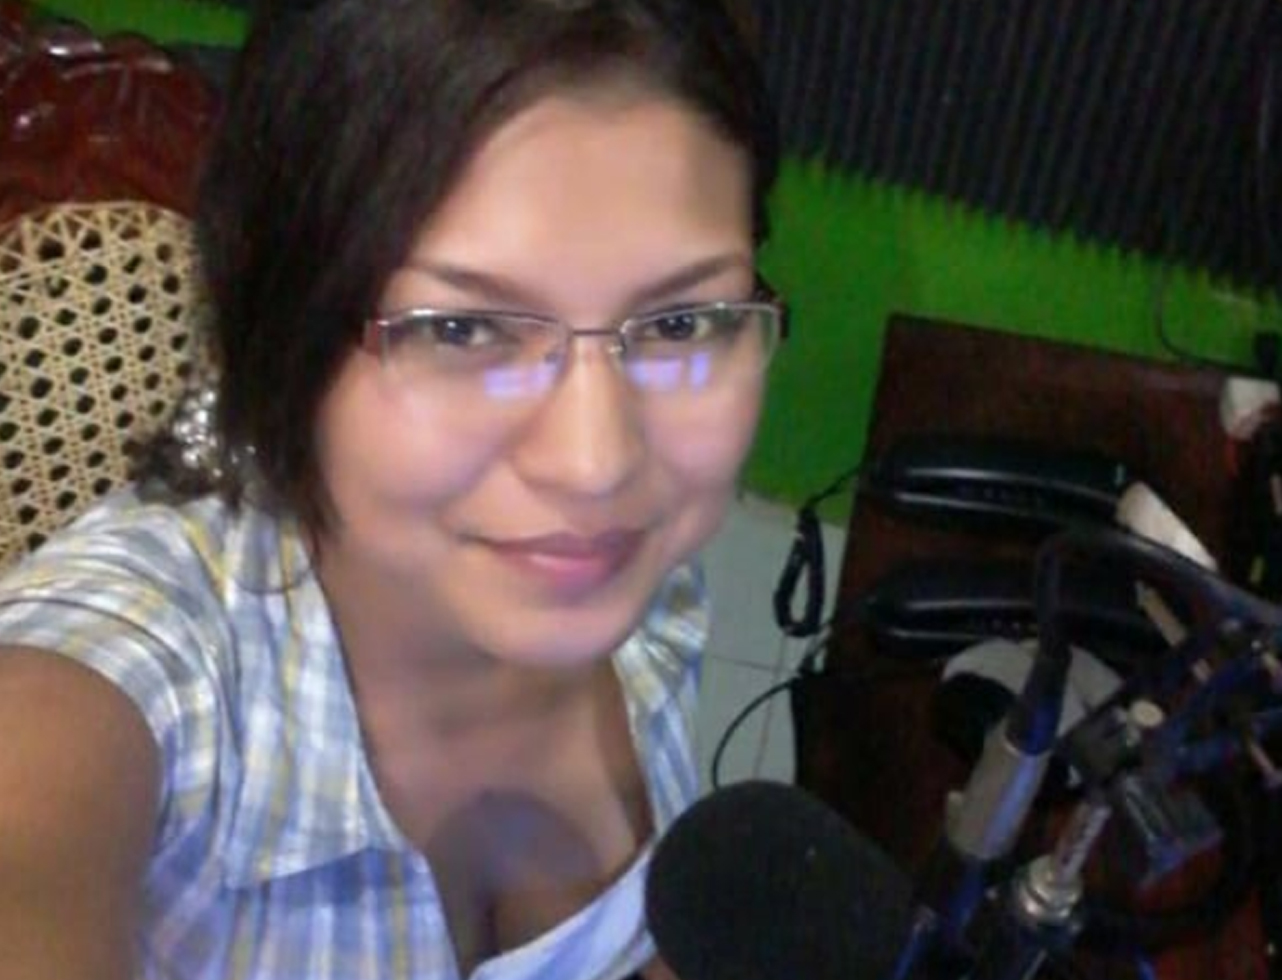 Nicaraguan journalist Kalúa Salazar faces criminal slander suit over corruption reporting - Committee to Protect Journalists